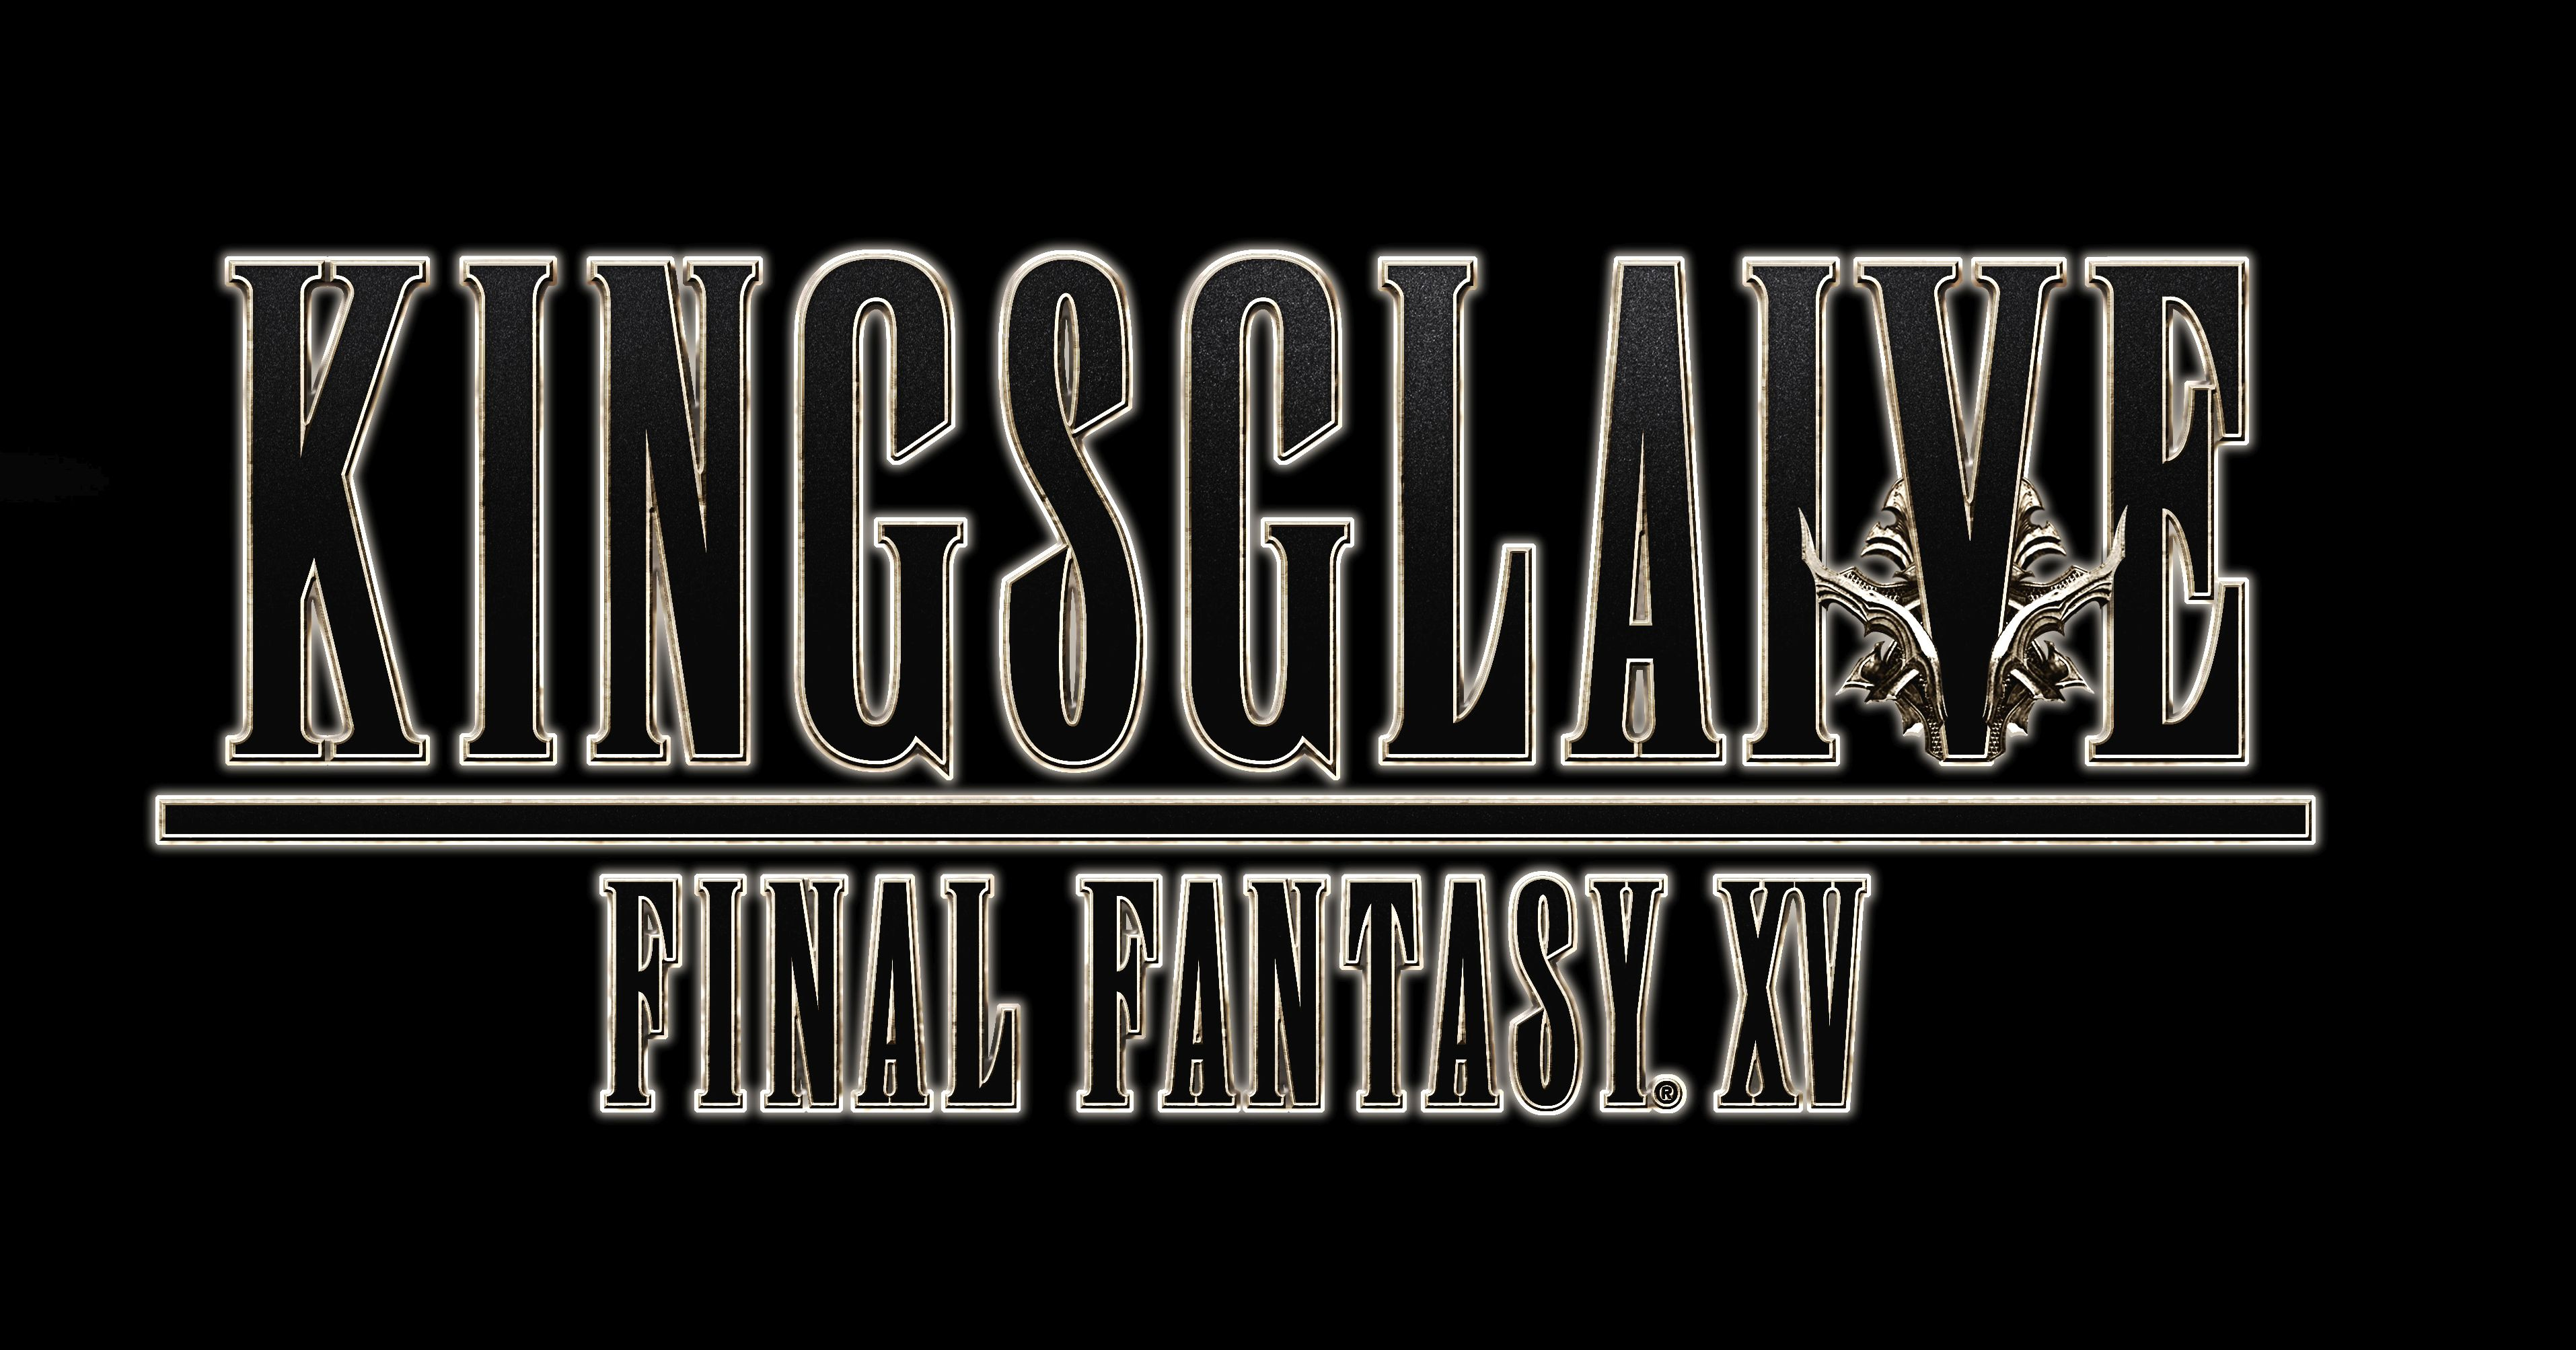 Kingsglaive: Final Fantasy XV Will Be Shown In Local Theaters Soon